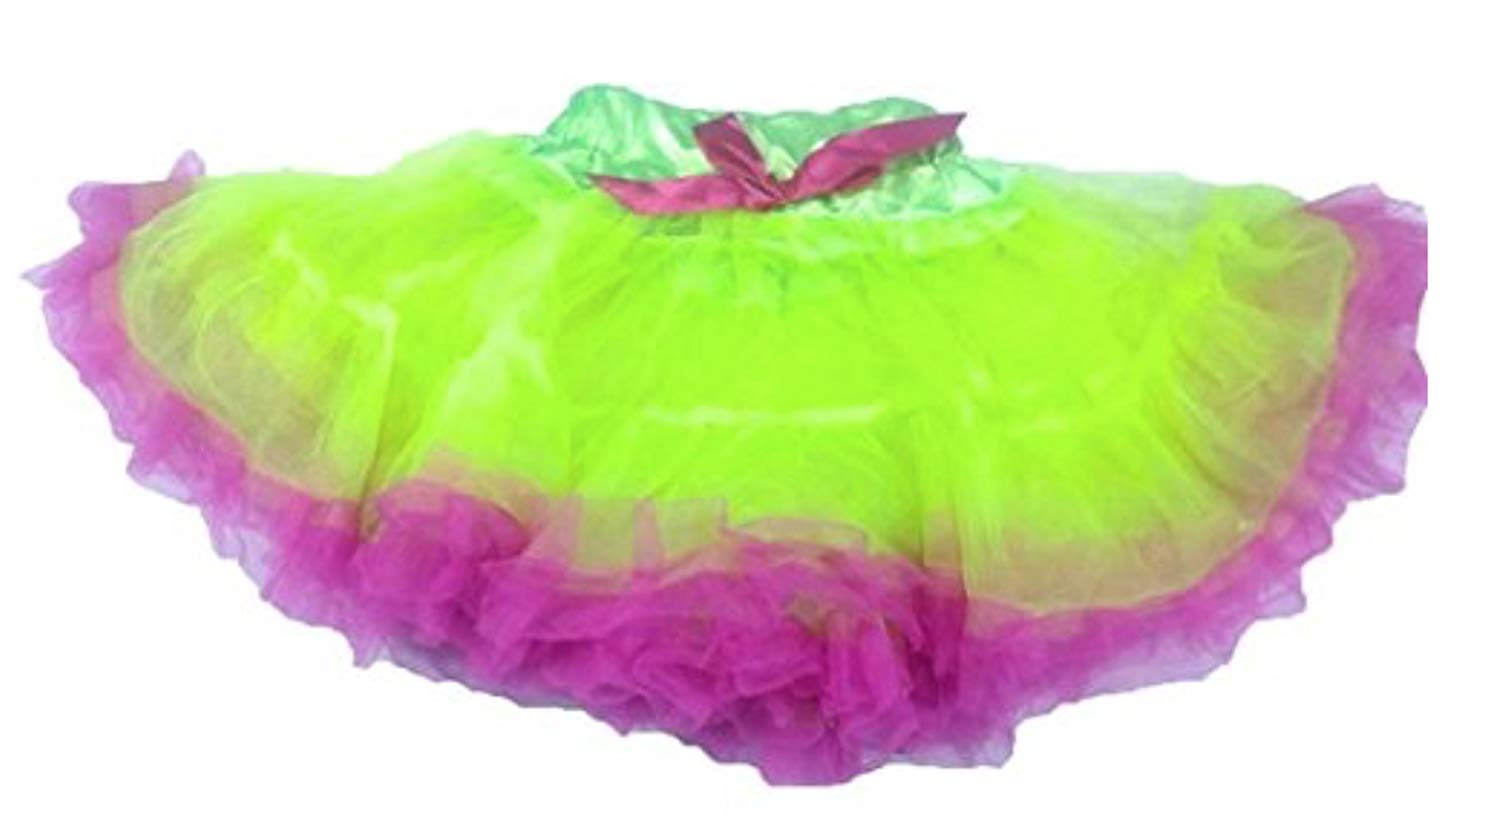 Neon Green and Hot Pink Tutu | Neon Green and Hot Pink Tutu Wholesale | Neon Green Tutu | Hot Pink Tutu Wholesale | Tutus